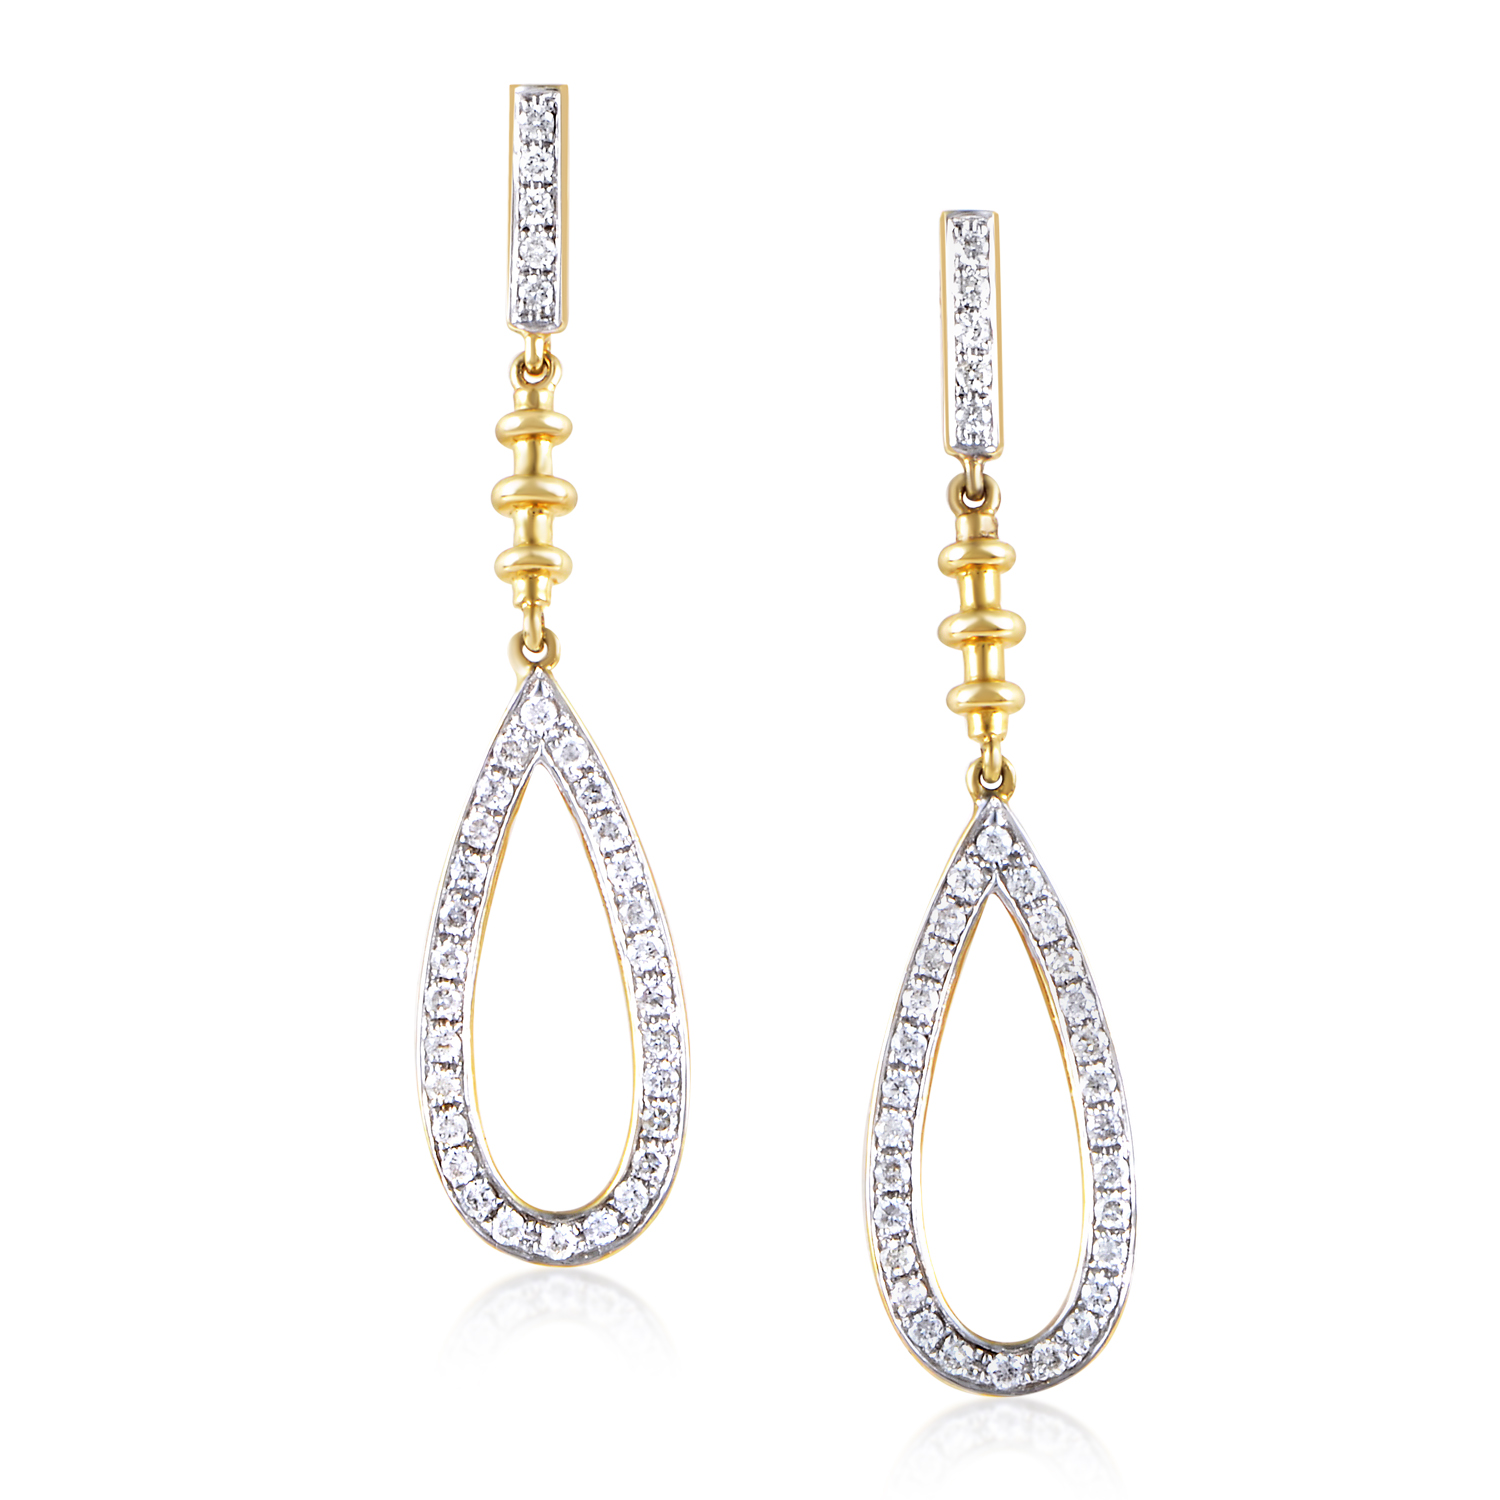 18K Yellow Gold Diamond Dangle Earrings SE86941REZZ